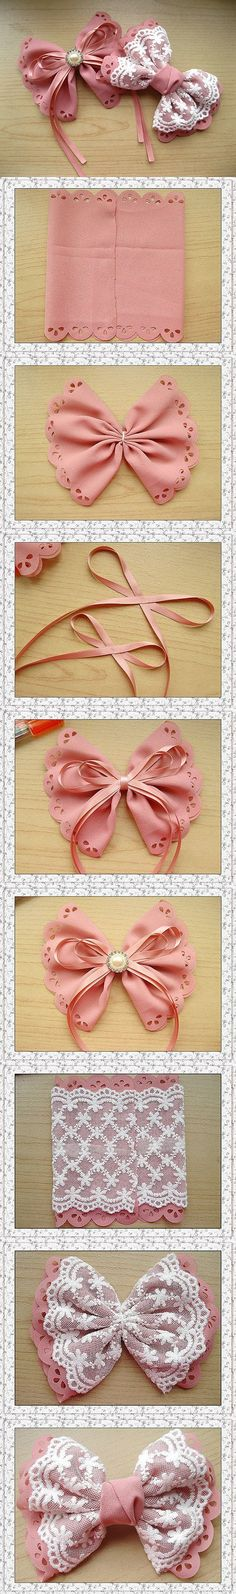 cute DIY bow tutorial - need to try this with SugarVeil On a headband or as a hair clip Cute Crafts, Diy And Crafts, Arts And Crafts, Summer Crafts, Fall Crafts, Diy Hair Accessories, Handmade Accessories, Crafty Craft, Crafting